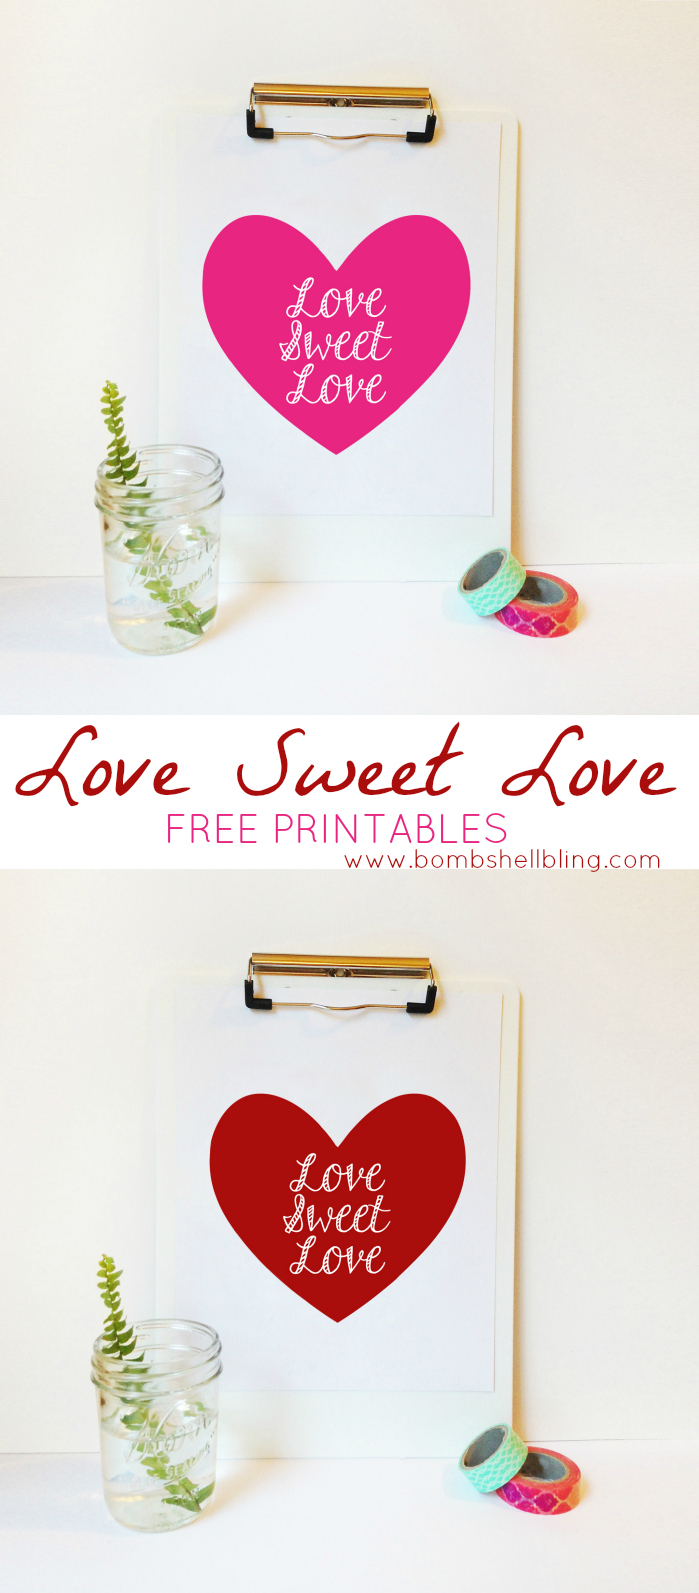 Love Sweet Love Free Printable in Two Colors!